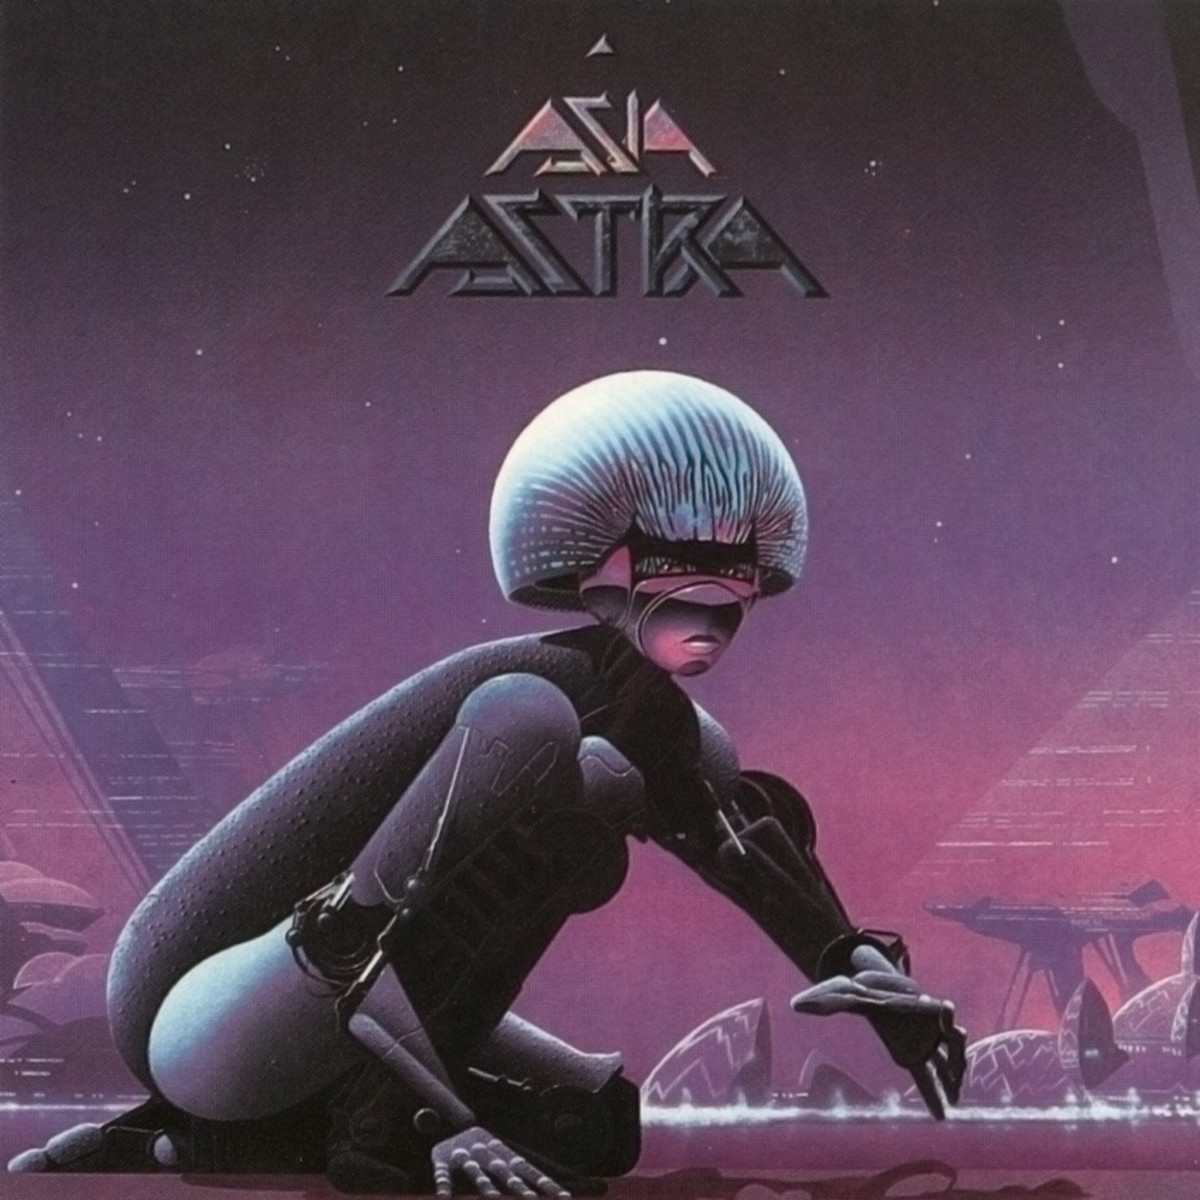 "Asia ""Astra"" Geffen Records GEF 26413 12"" LP Vinyl Record, UK Pressing (1985) Album Cover Art & Design by Roger Dean"